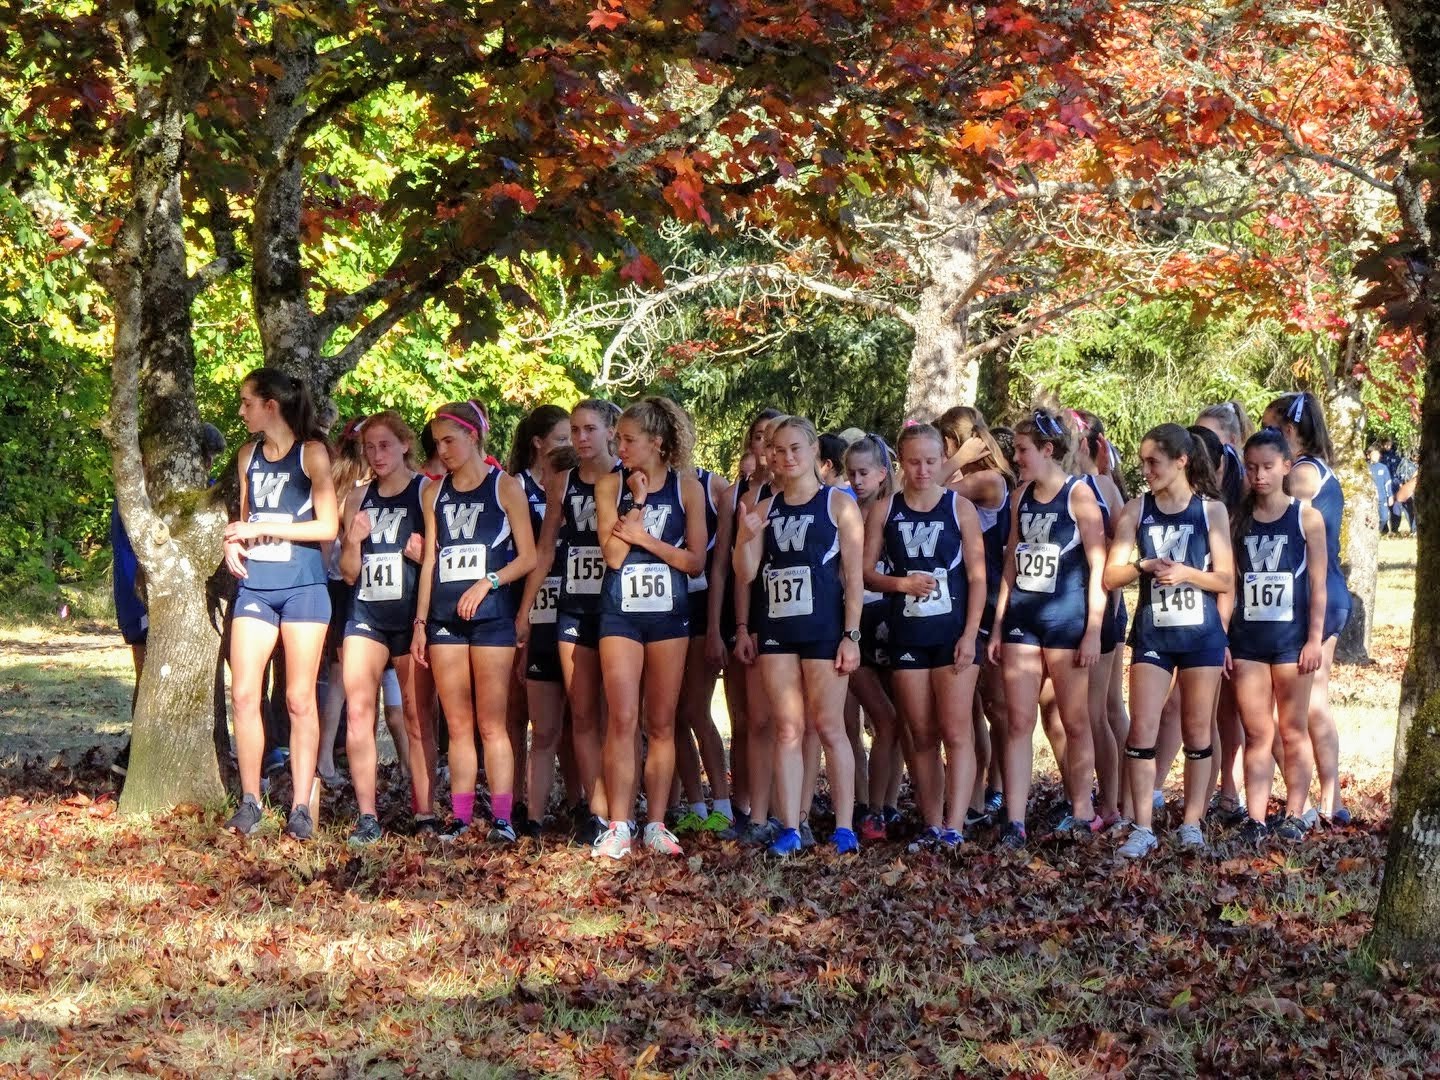 Both varsity and junior varsity girls wait expectantly at the start line. Wilsonville swept the meet, winning in all divisions.